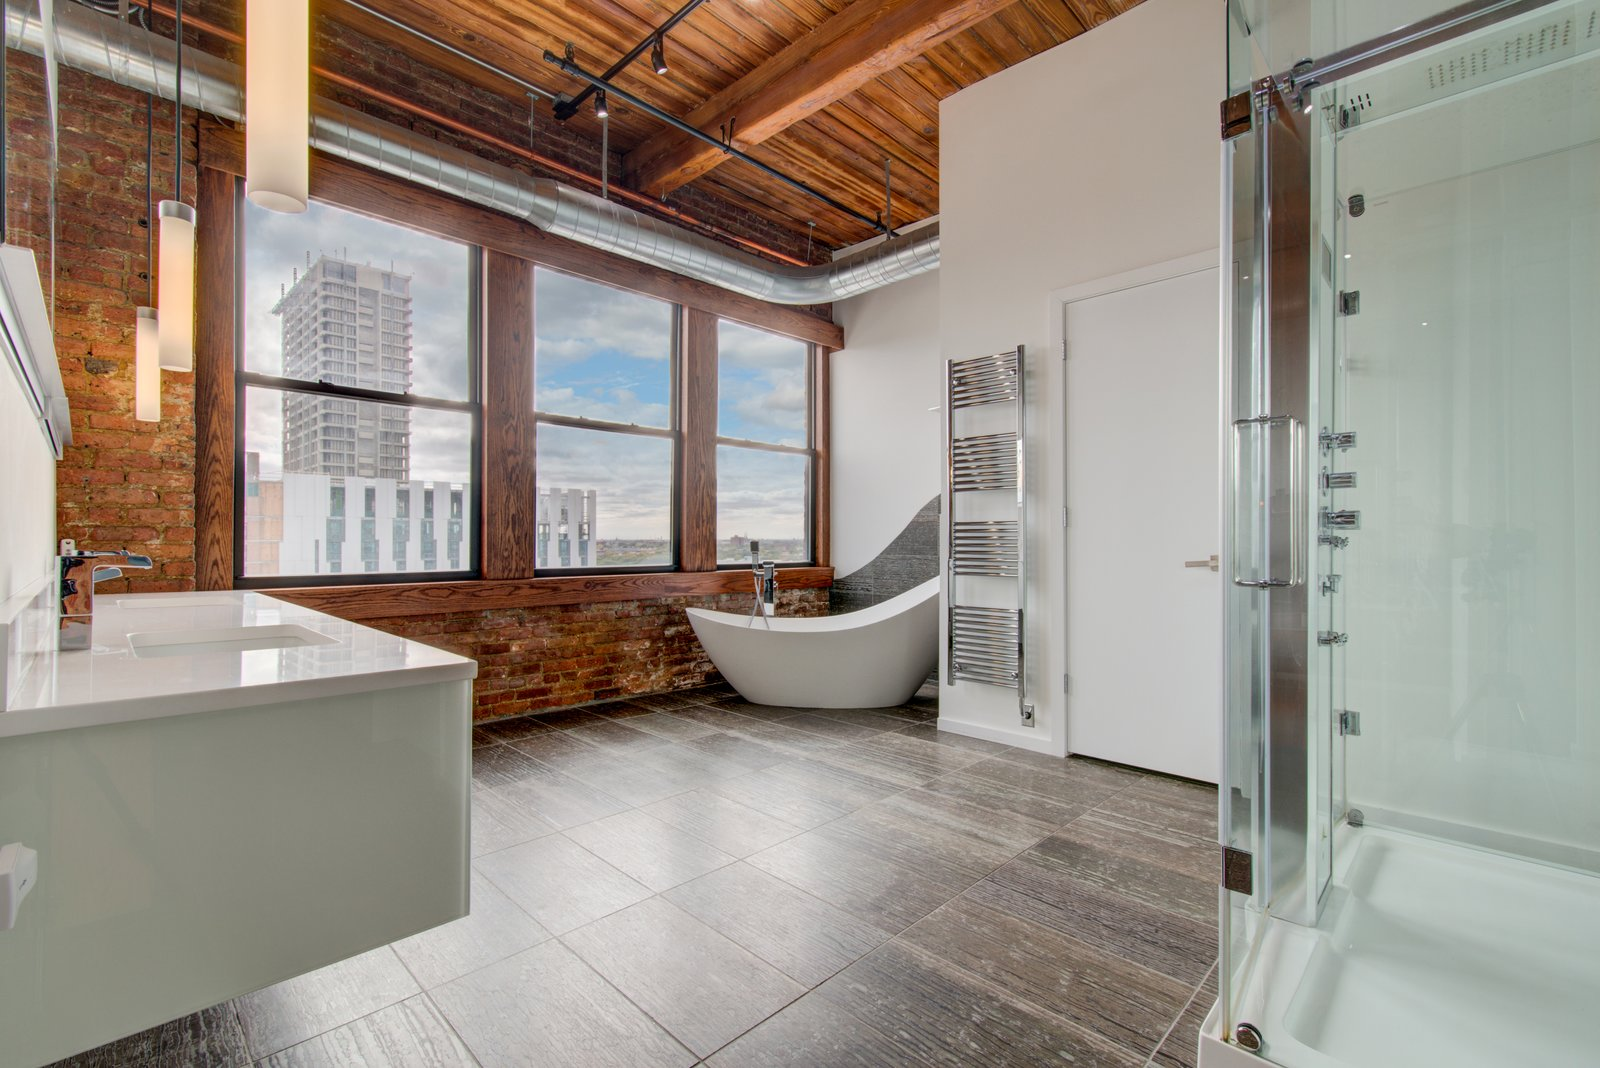 Bath Room, Freestanding Tub, Track Lighting, Soaking Tub, Ceiling Lighting, and Quartzite Counter  Penthouse That Starred on NBC's 'Chicago Fire' Asks $1.775M